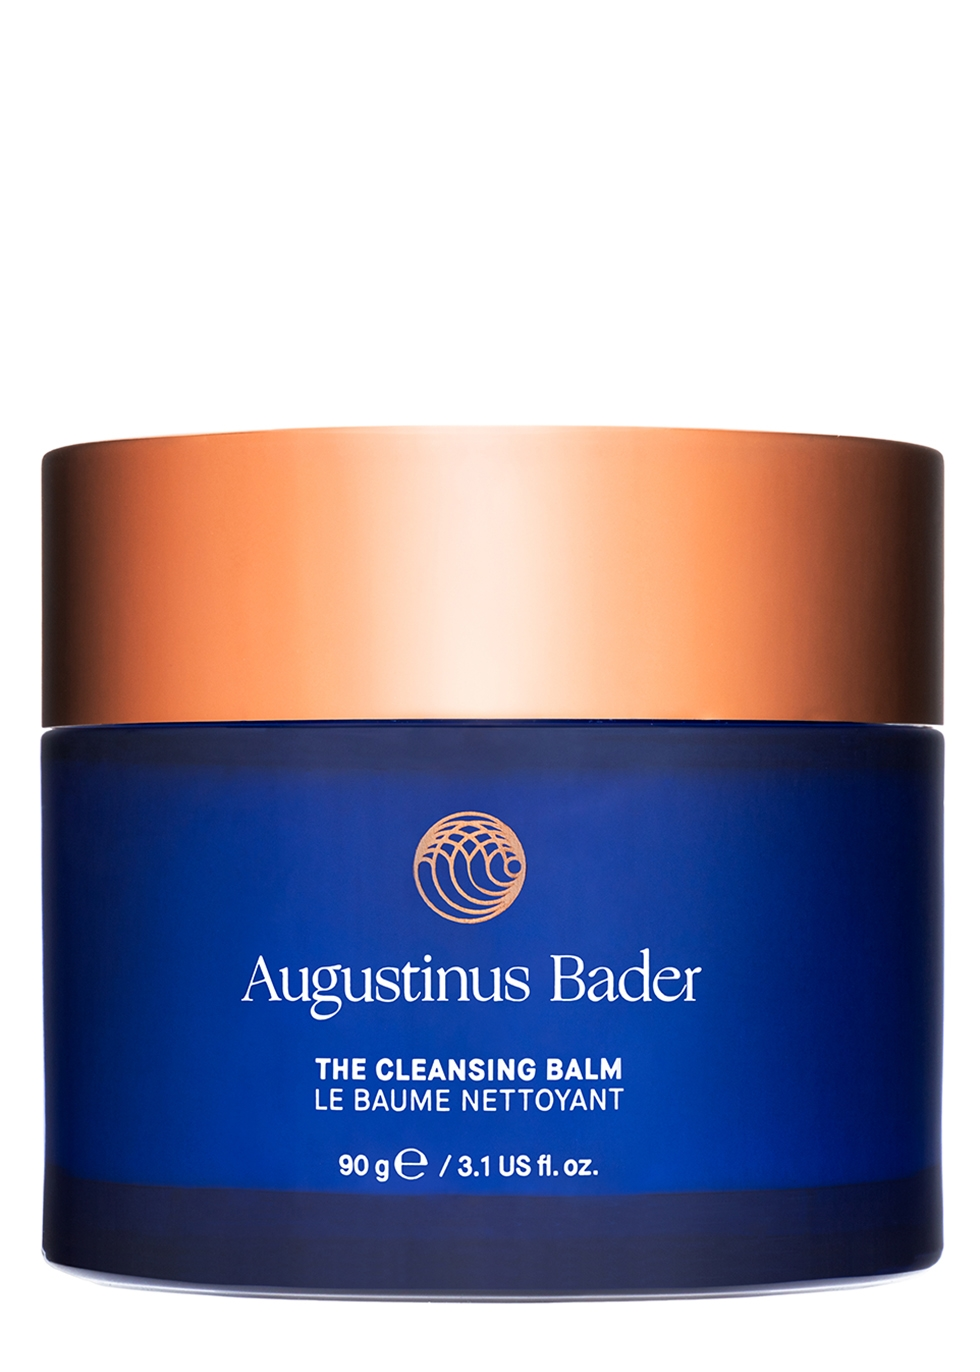 The Cleansing Balm 90g